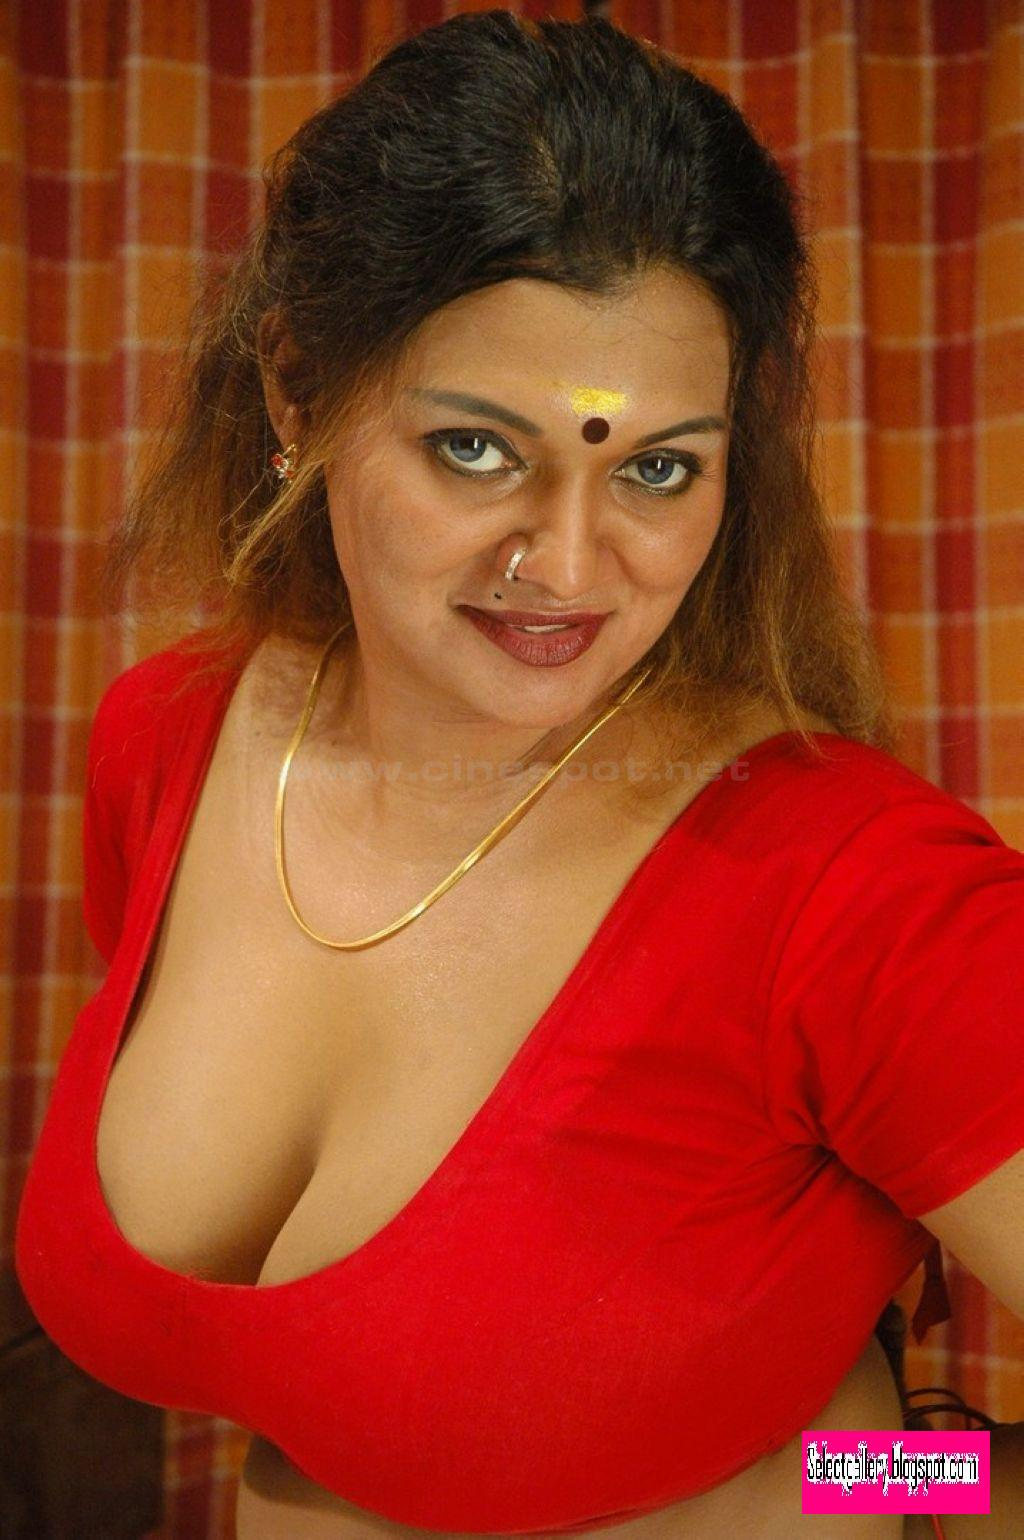 Boobs Actress 109